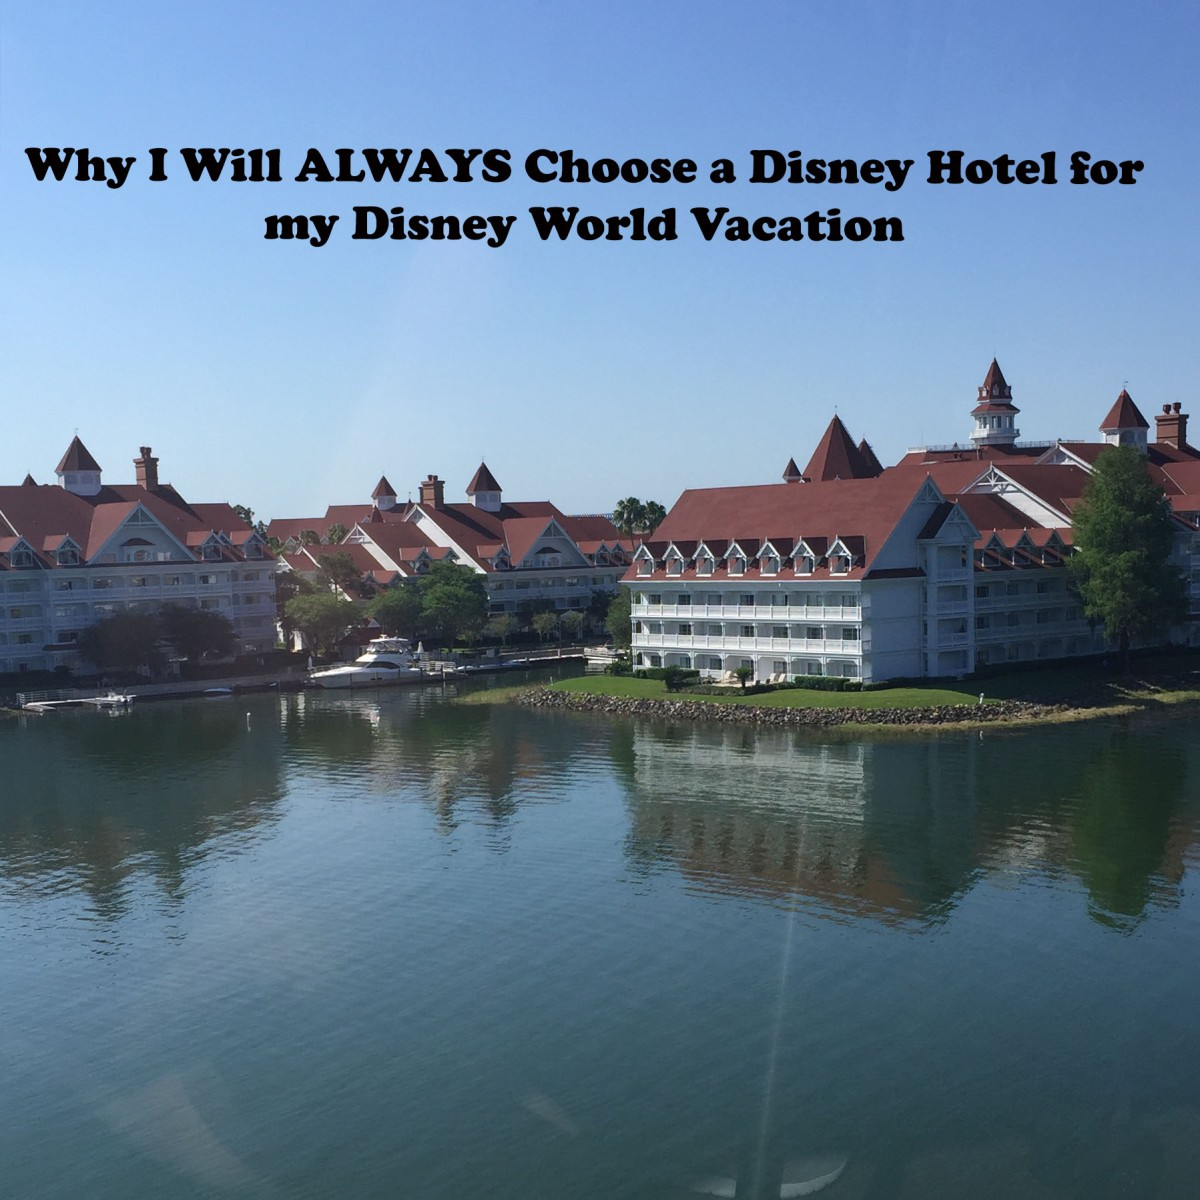 Why I Will ALWAYS Choose a Disney Hotel for my Disney World Vacation